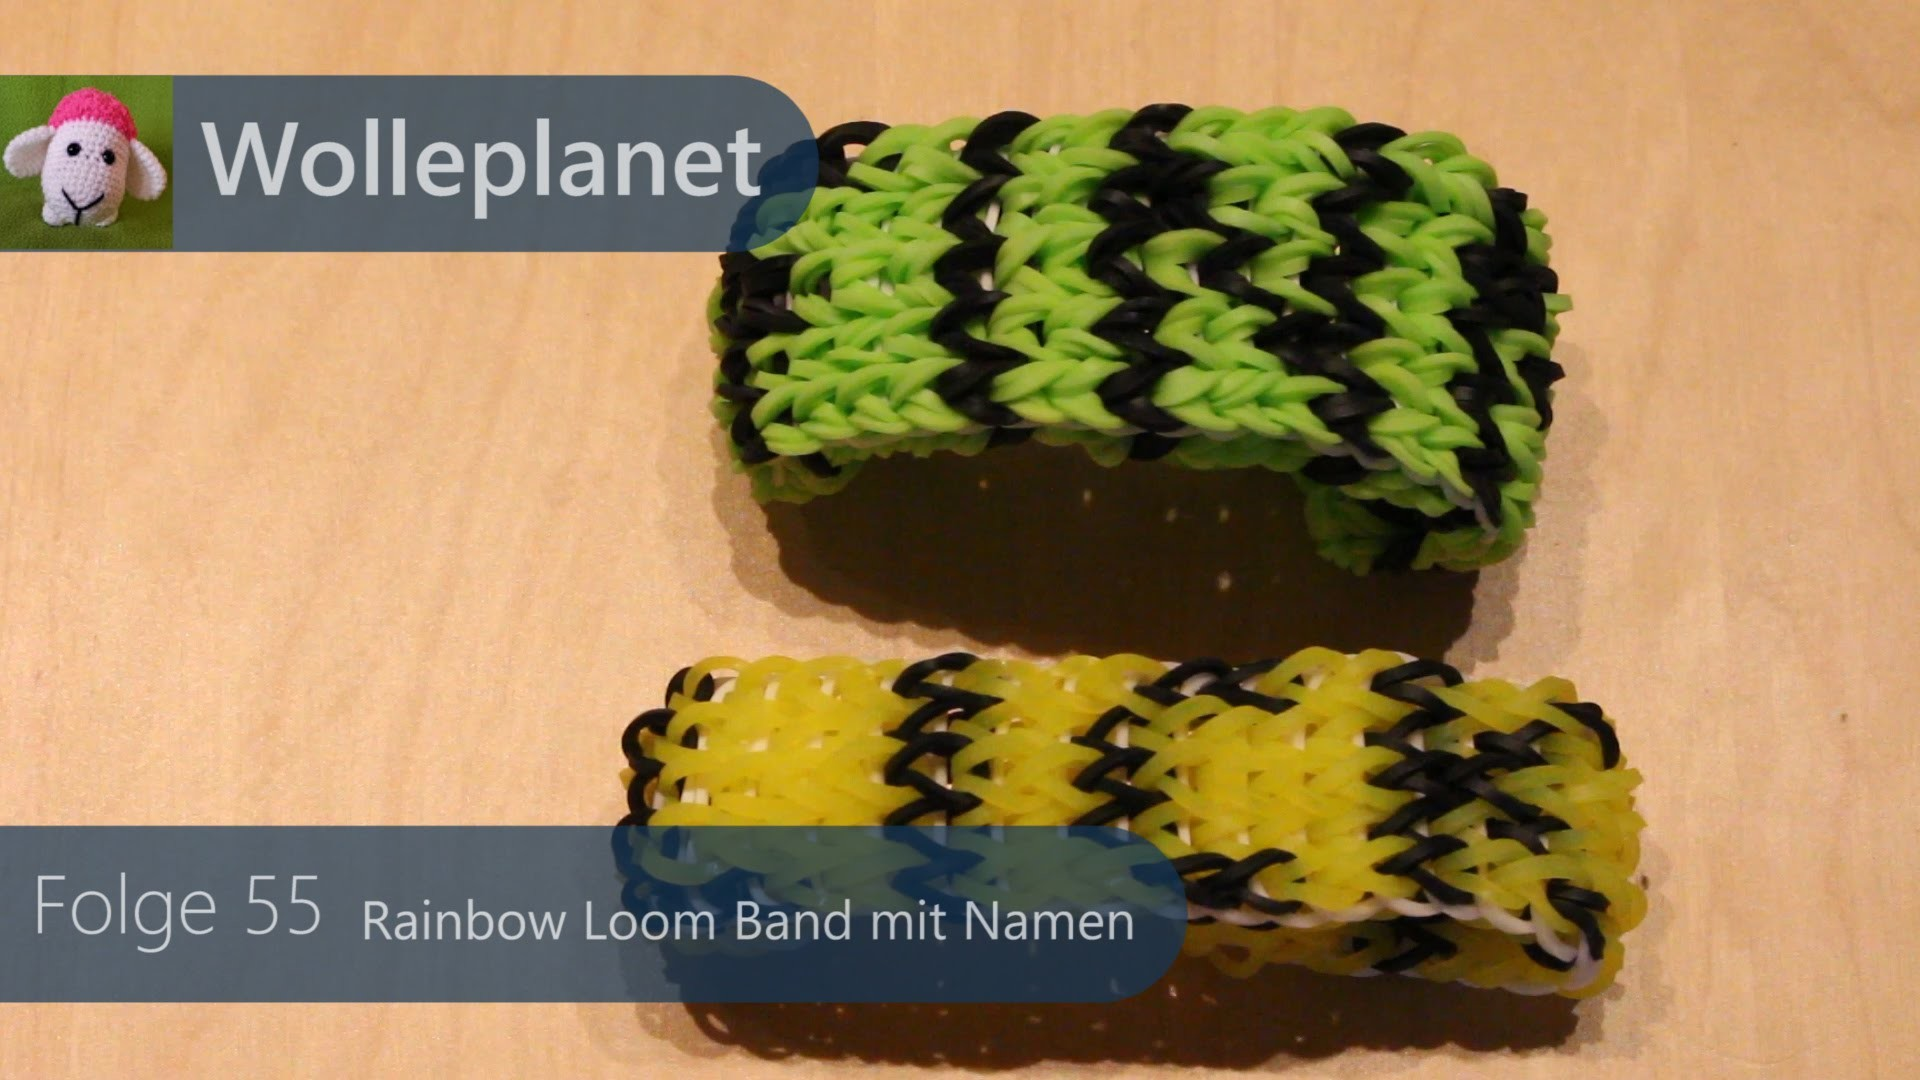 Rainbow Loom Band mit Namen